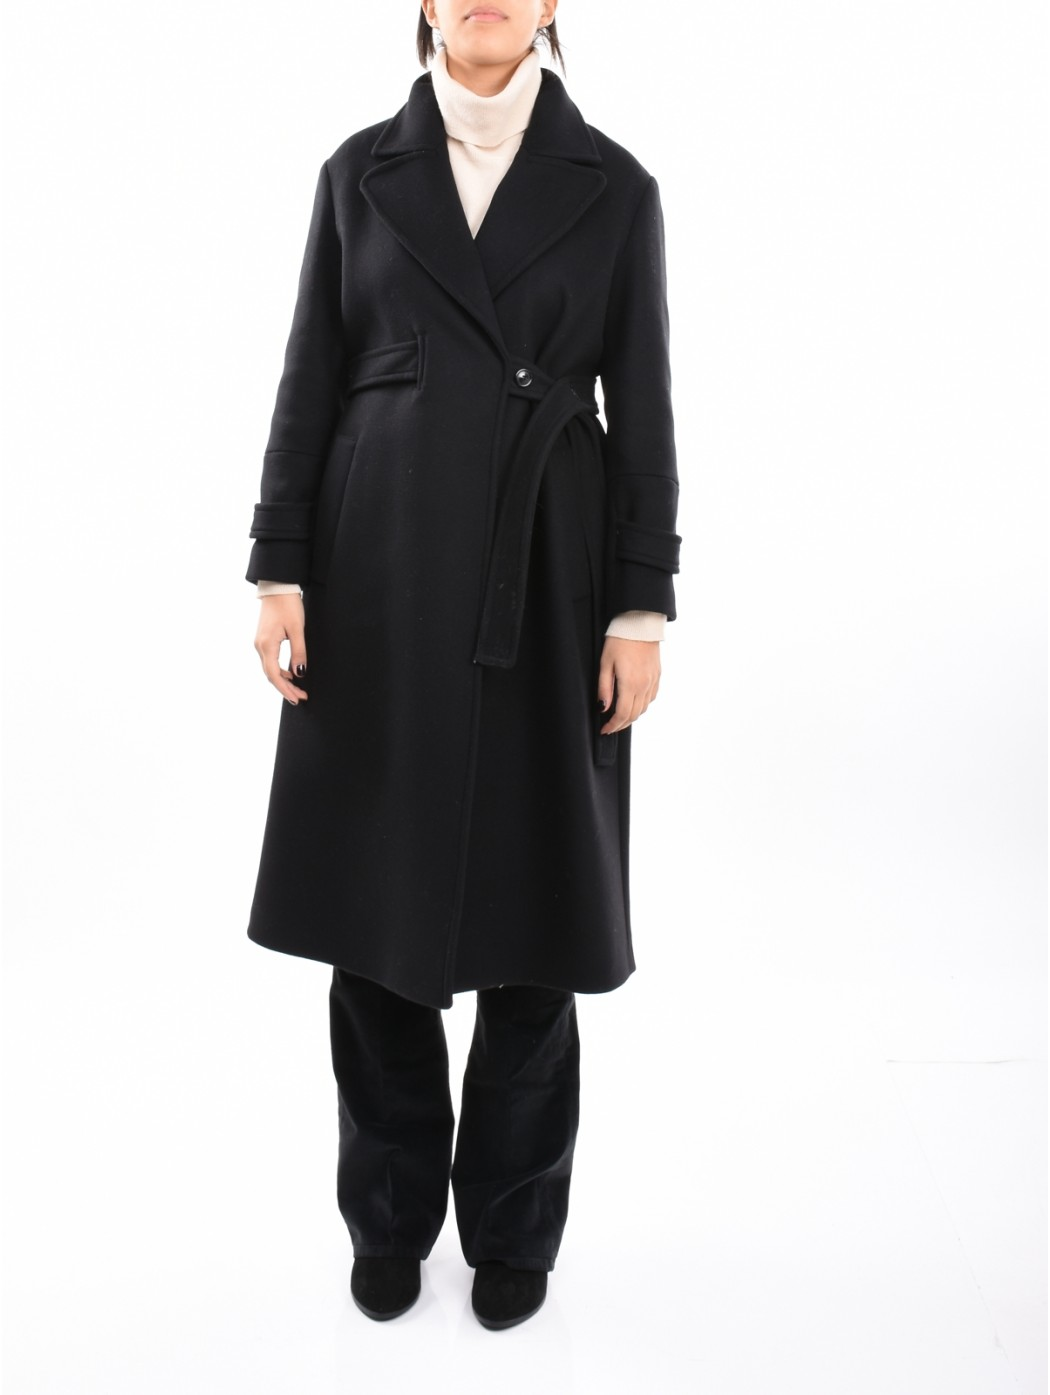 GRIFONI DONNA GD26005 999 CAPPOTTO